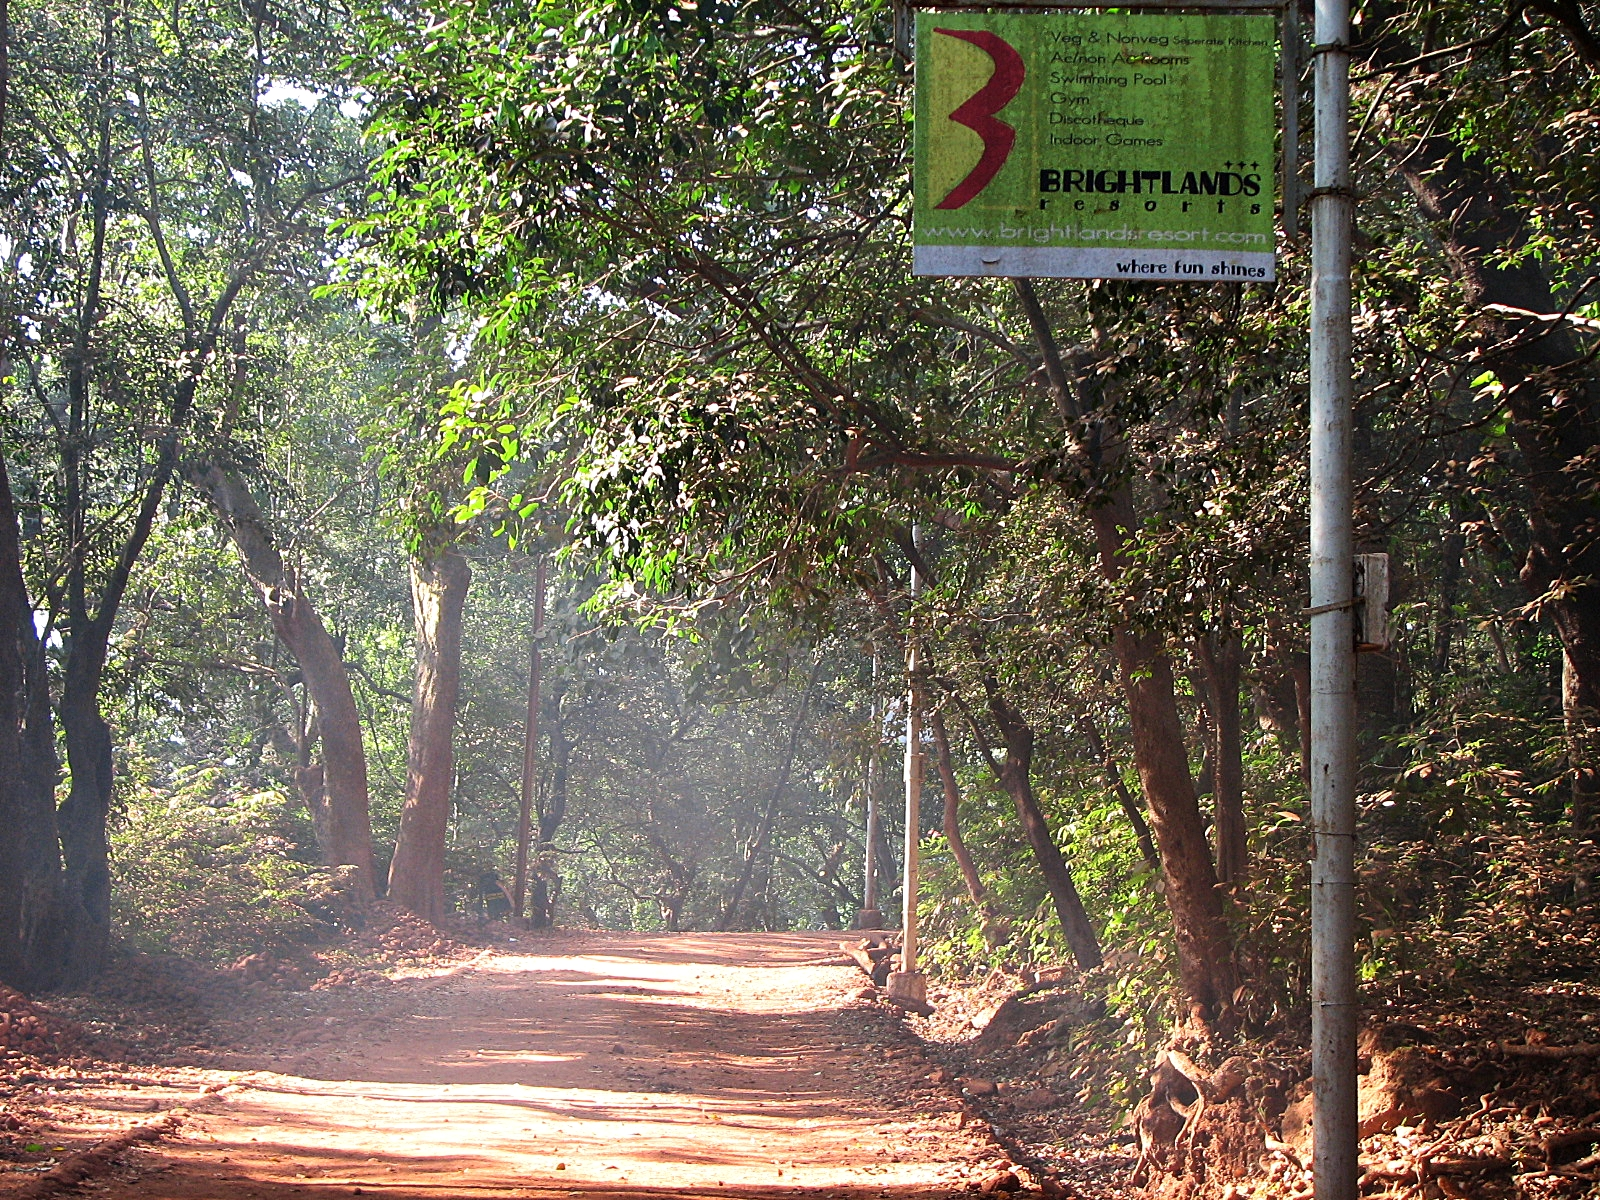 Roads Matheran - TVS Road Trip